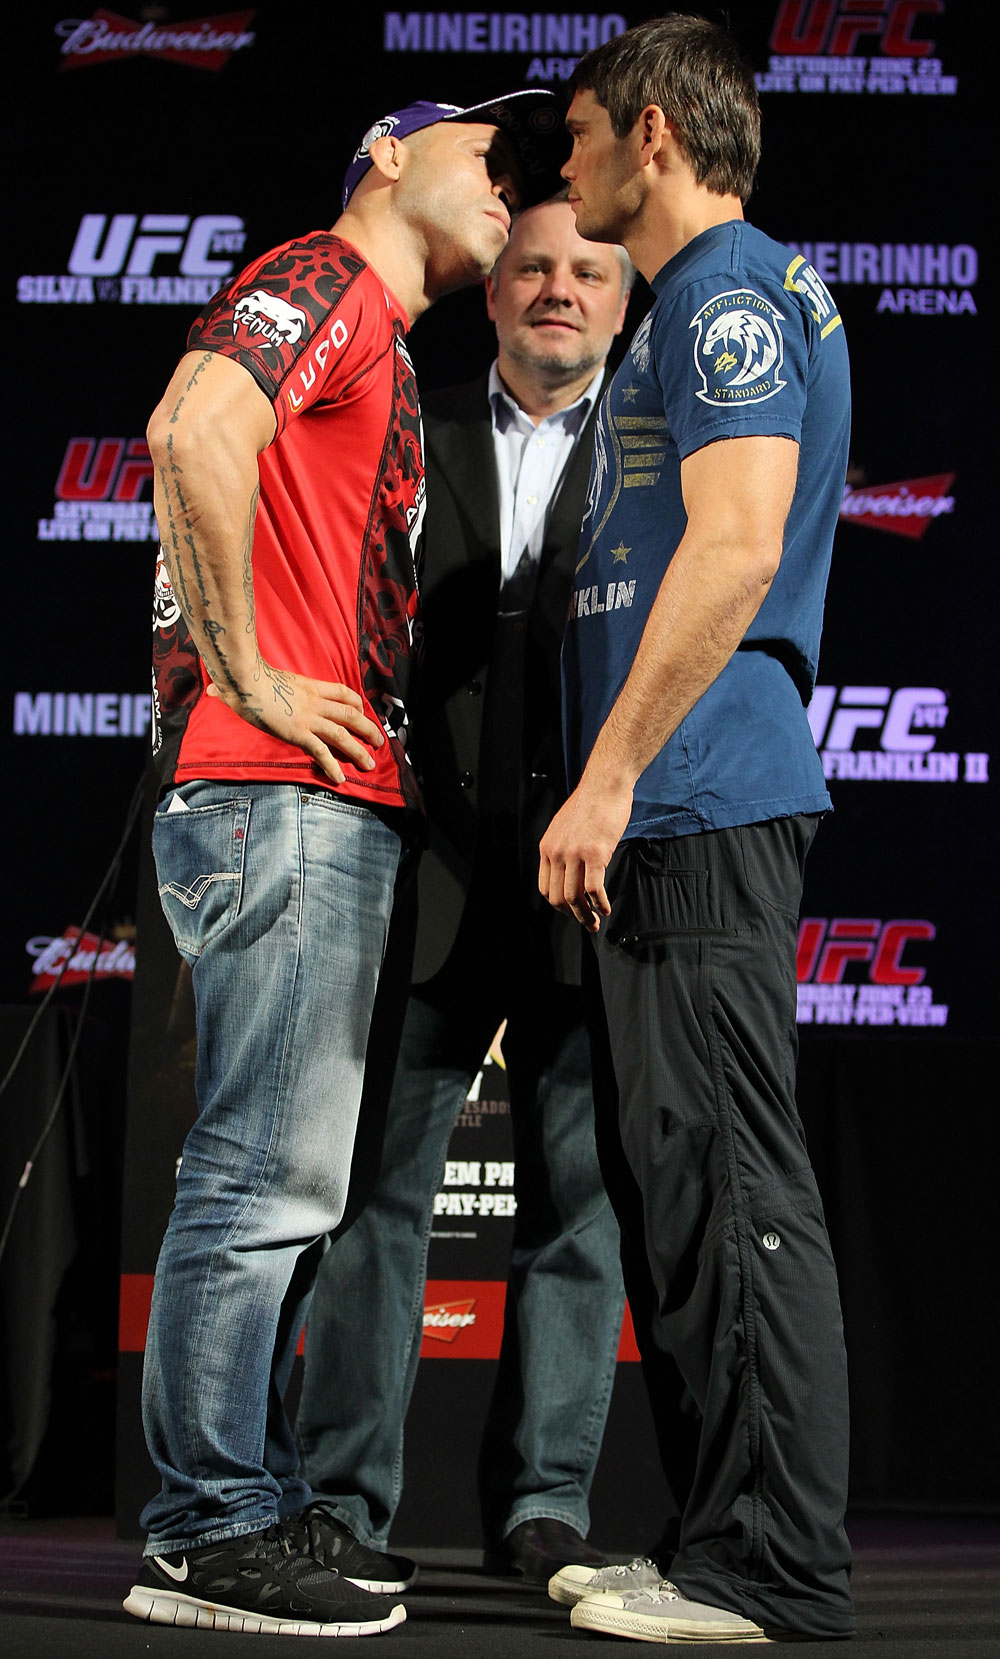 BELO HORIZONTE, BRAZIL - JUNE 21:   (L-R) Opponents Wanderlei Silva and Rich Franklin face off during the UFC 147 press conference at Ouro Minas Palace on June 21, 2012 in Belo Horizonte, Brazil.  (Photo by Josh Hedges/Zuffa LLC/Zuffa LLC via Getty Images)